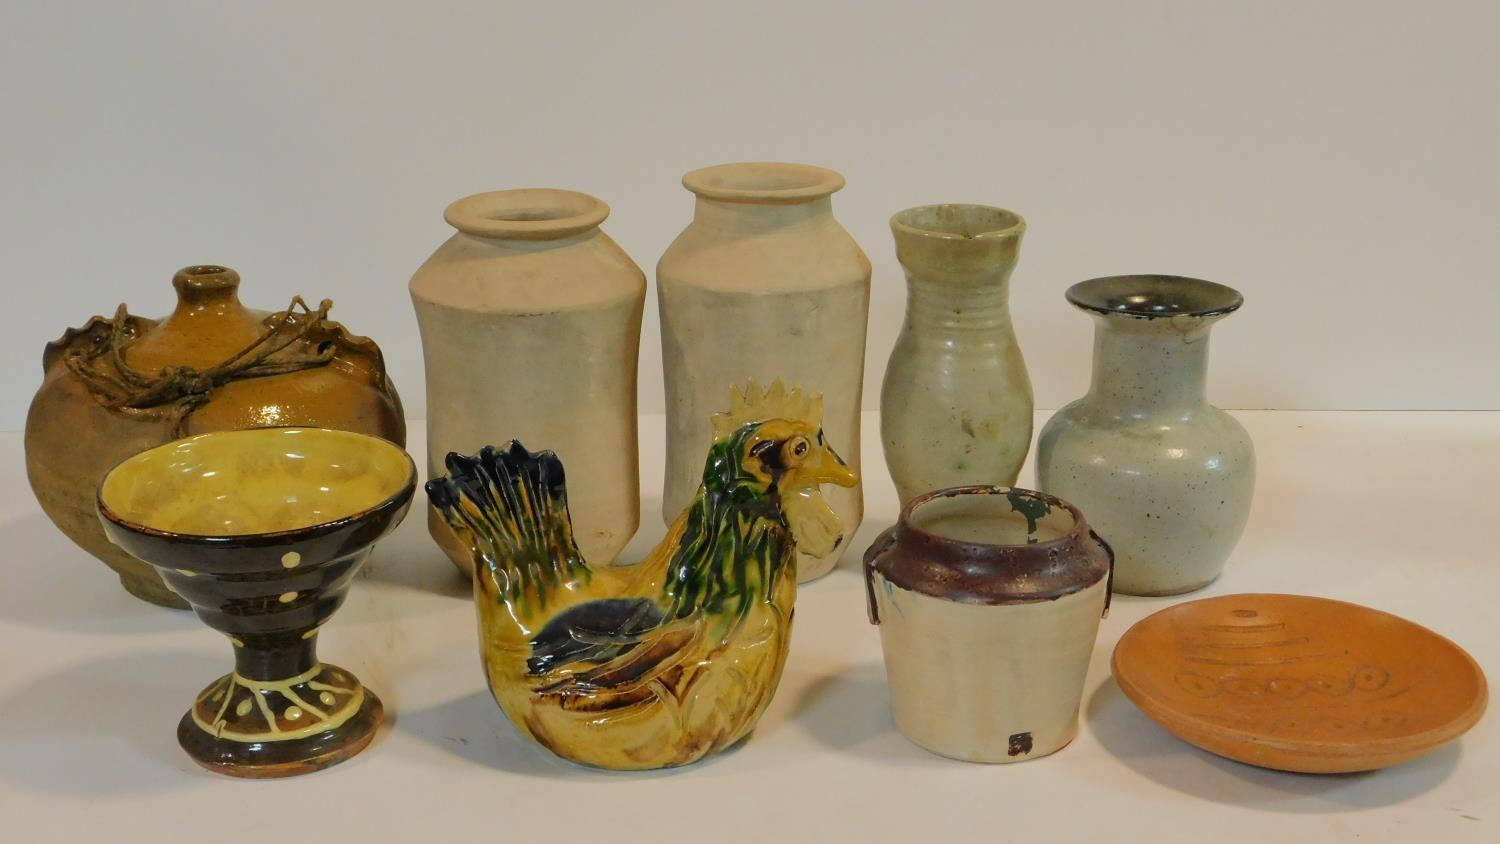 A miscellaneous collection of studio pottery, various jars, a bowl, ceramic chicken and a